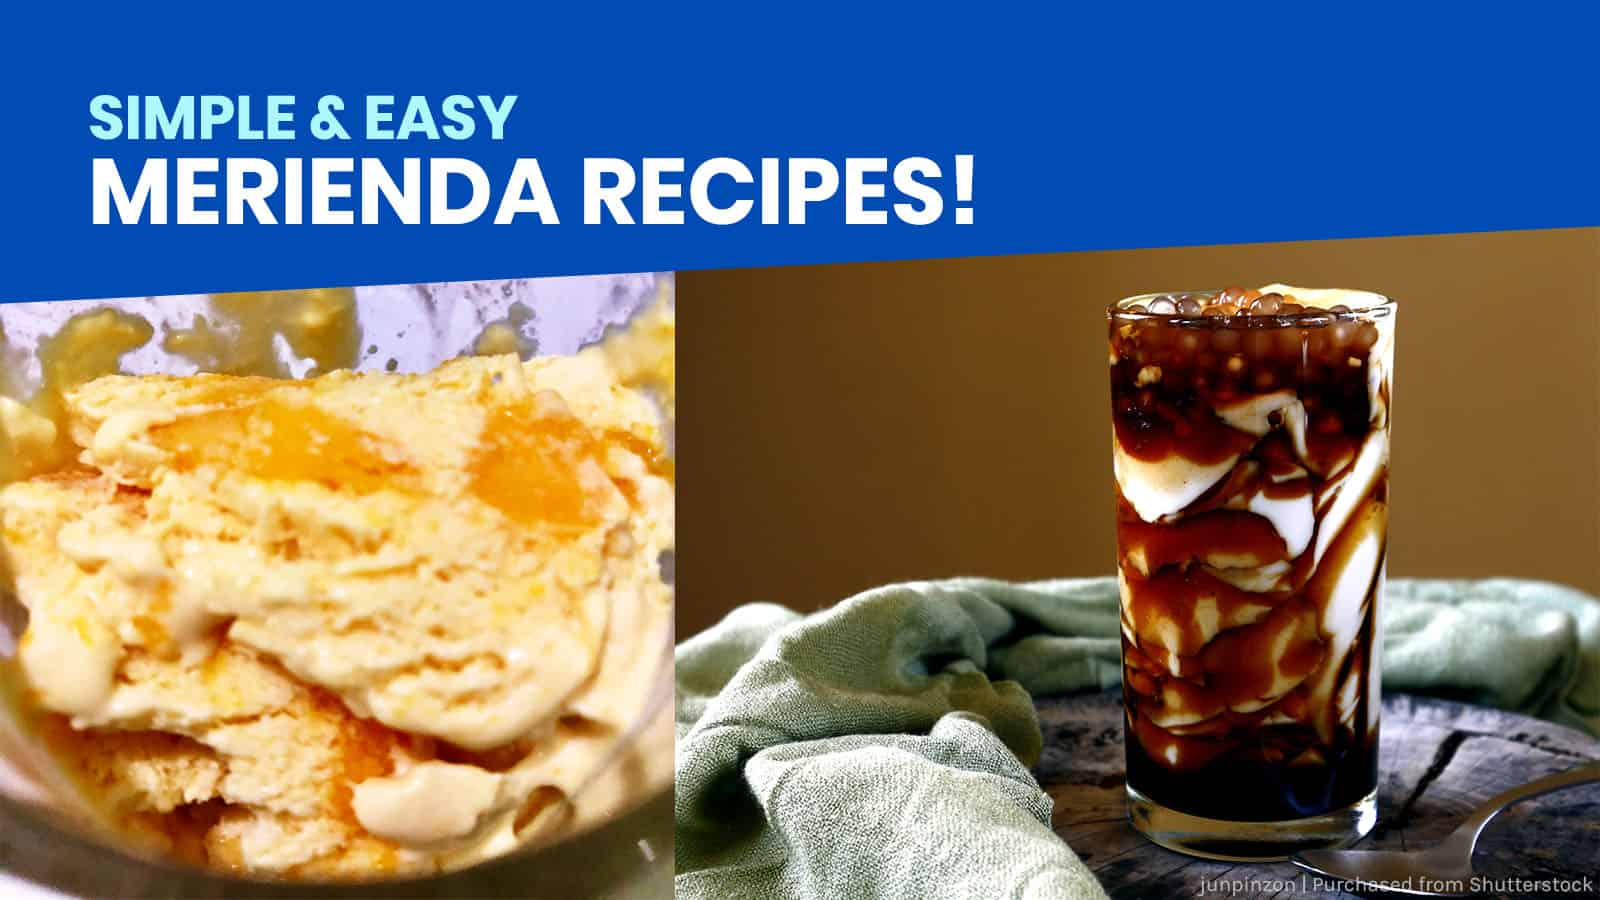 10 EASY MERIENDA RECIPES You can Try at Home!